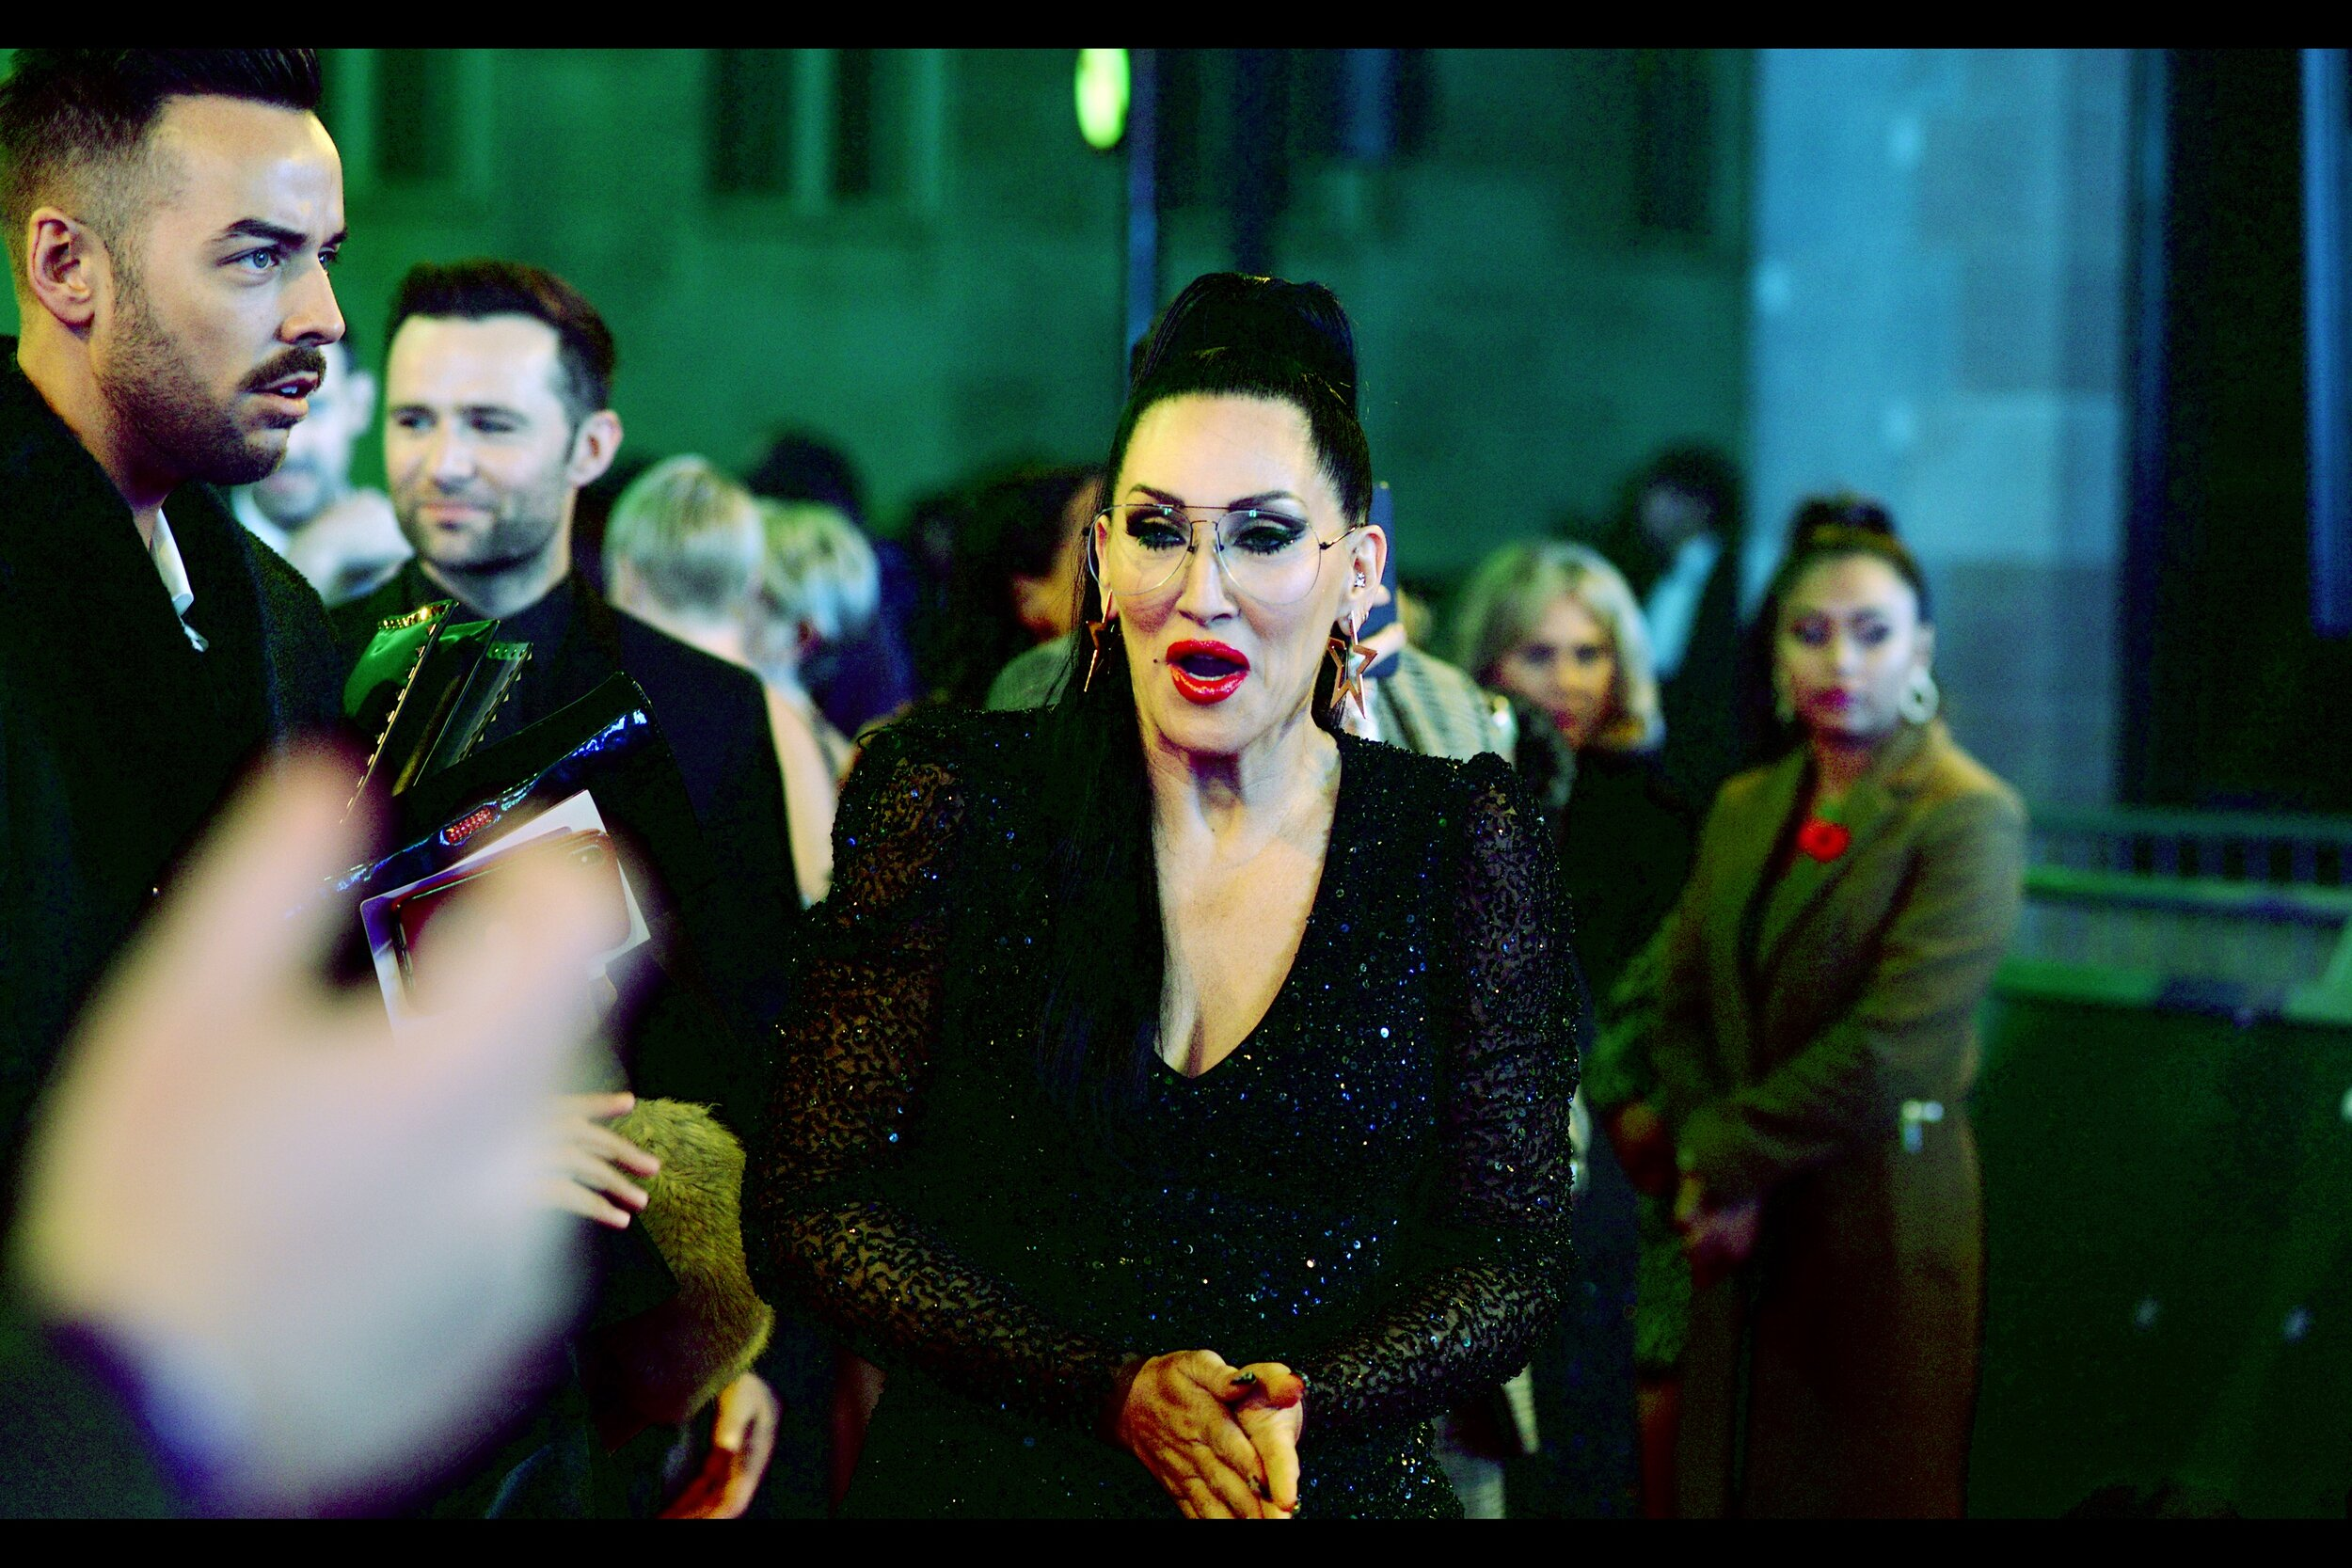 """Michelle Visage. Based purely upon her answer of  """"Paso Doble""""  to a question asked by an autograph dealer next to me, I'm going to assume she's from the world of Dancing. Please don't ask me how I could possibly know this, as the answer involves a flashback to over a decade ago and Chris Hemsworth, and a part of my life I don't presently wish to recall."""